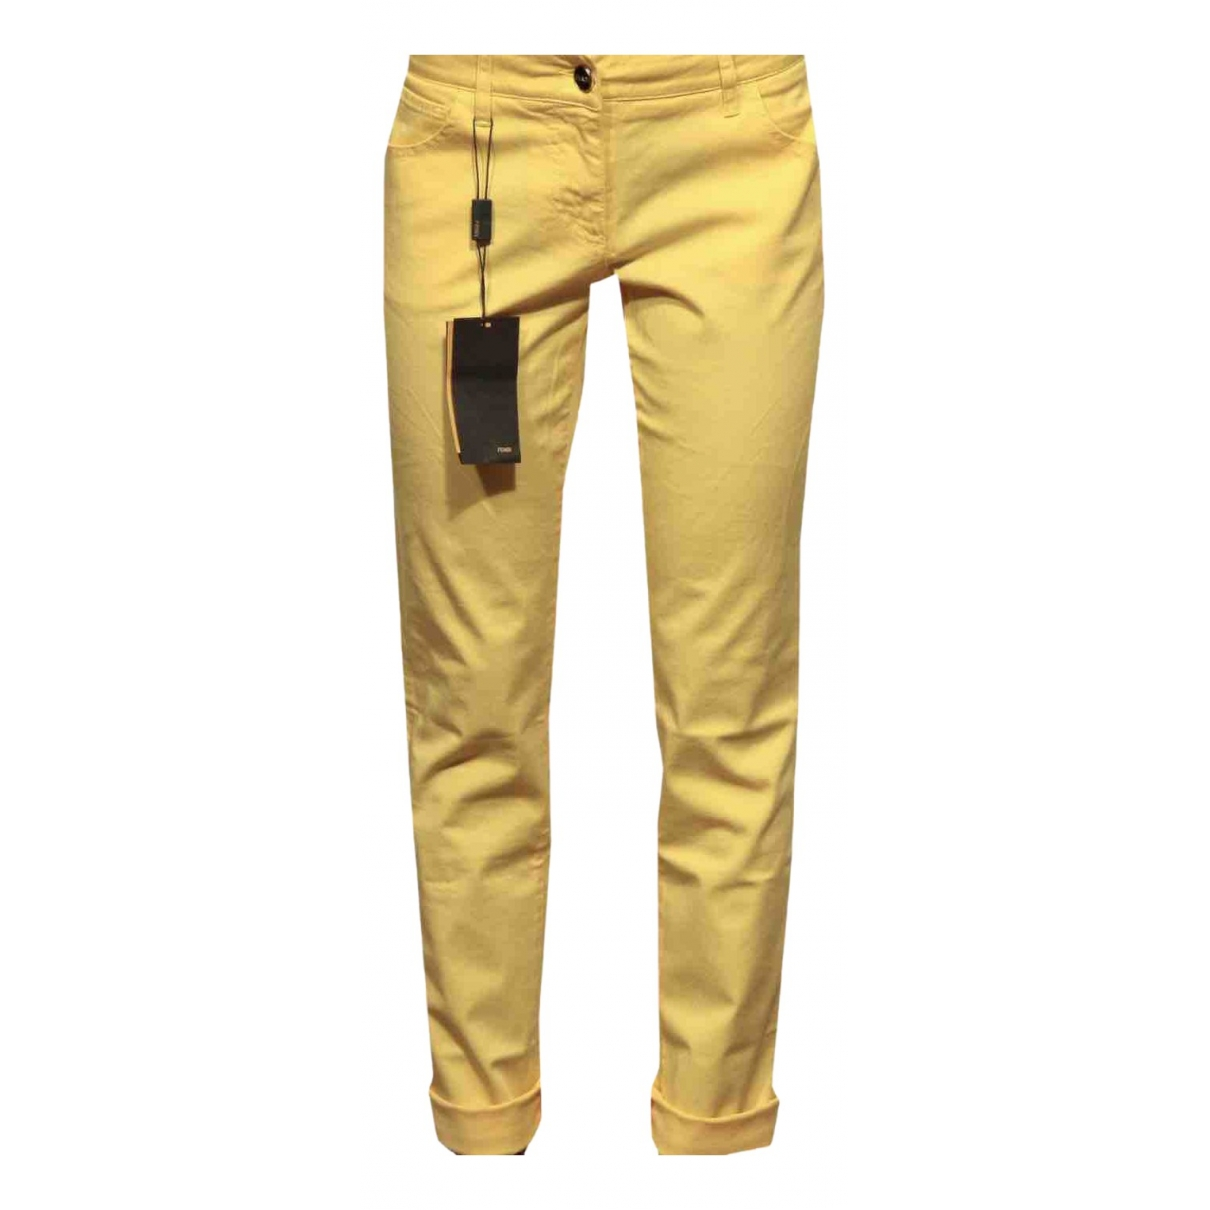 Fendi \N Yellow Cotton Trousers for Women 46 IT